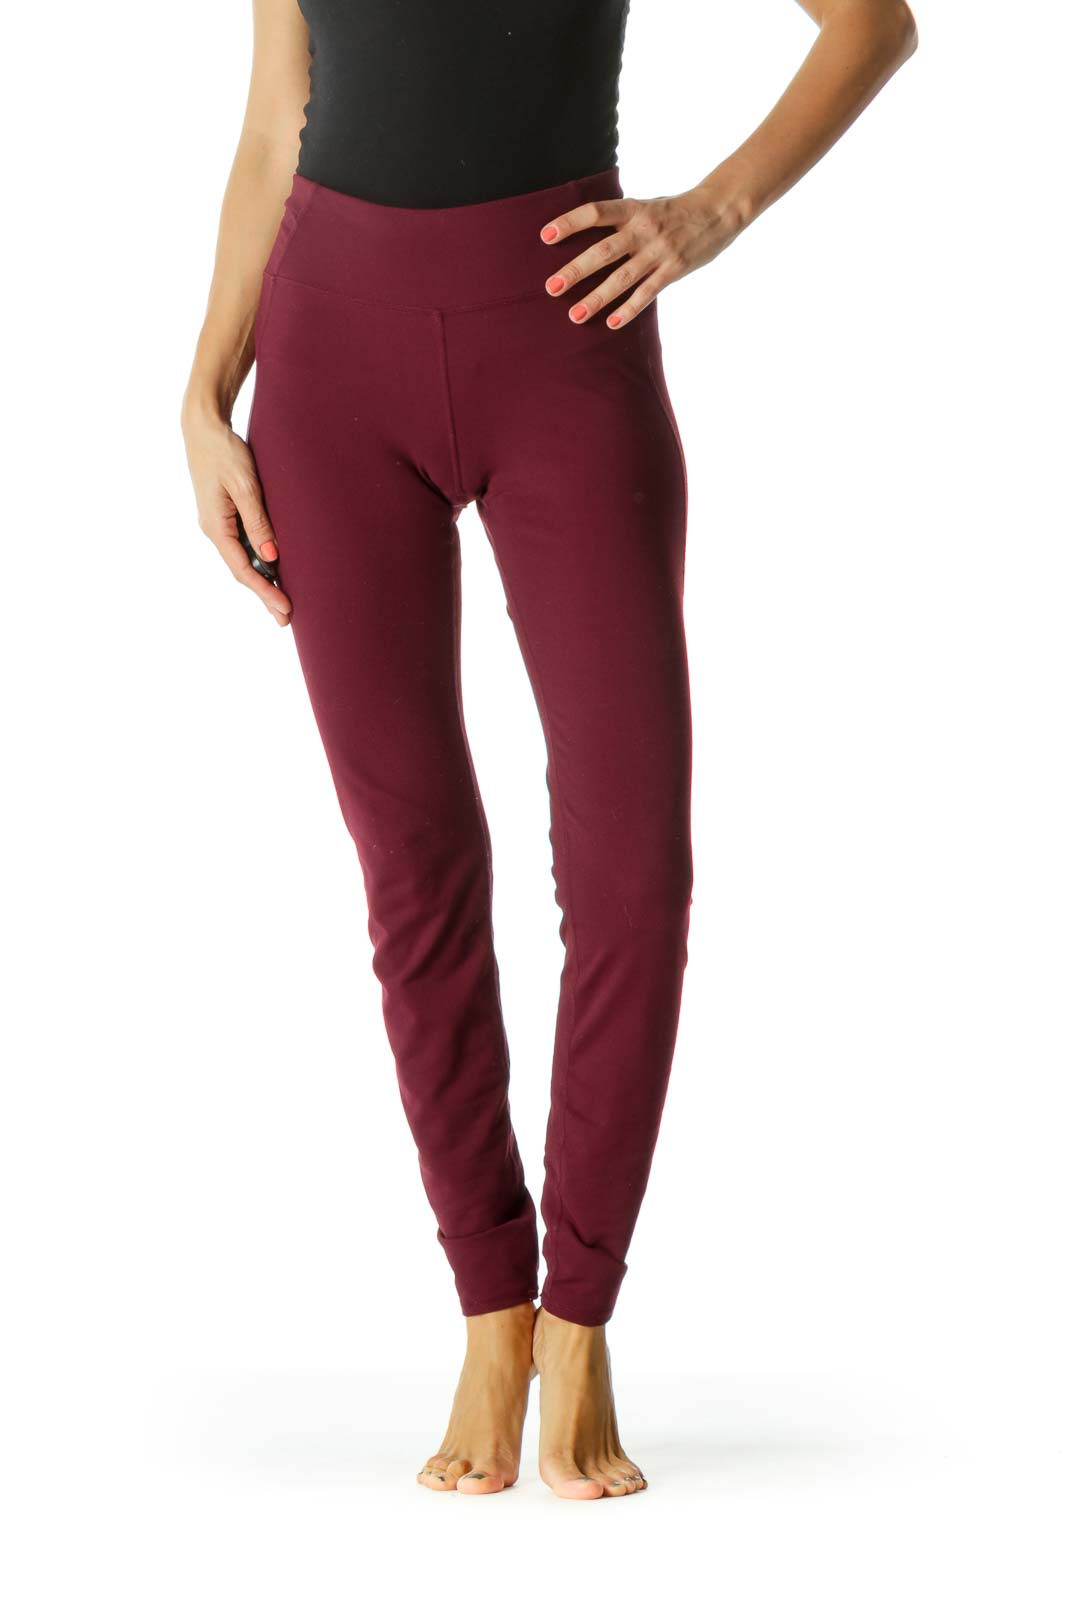 Burgundy Sports Pants with Inside Small Hip Pocket Front